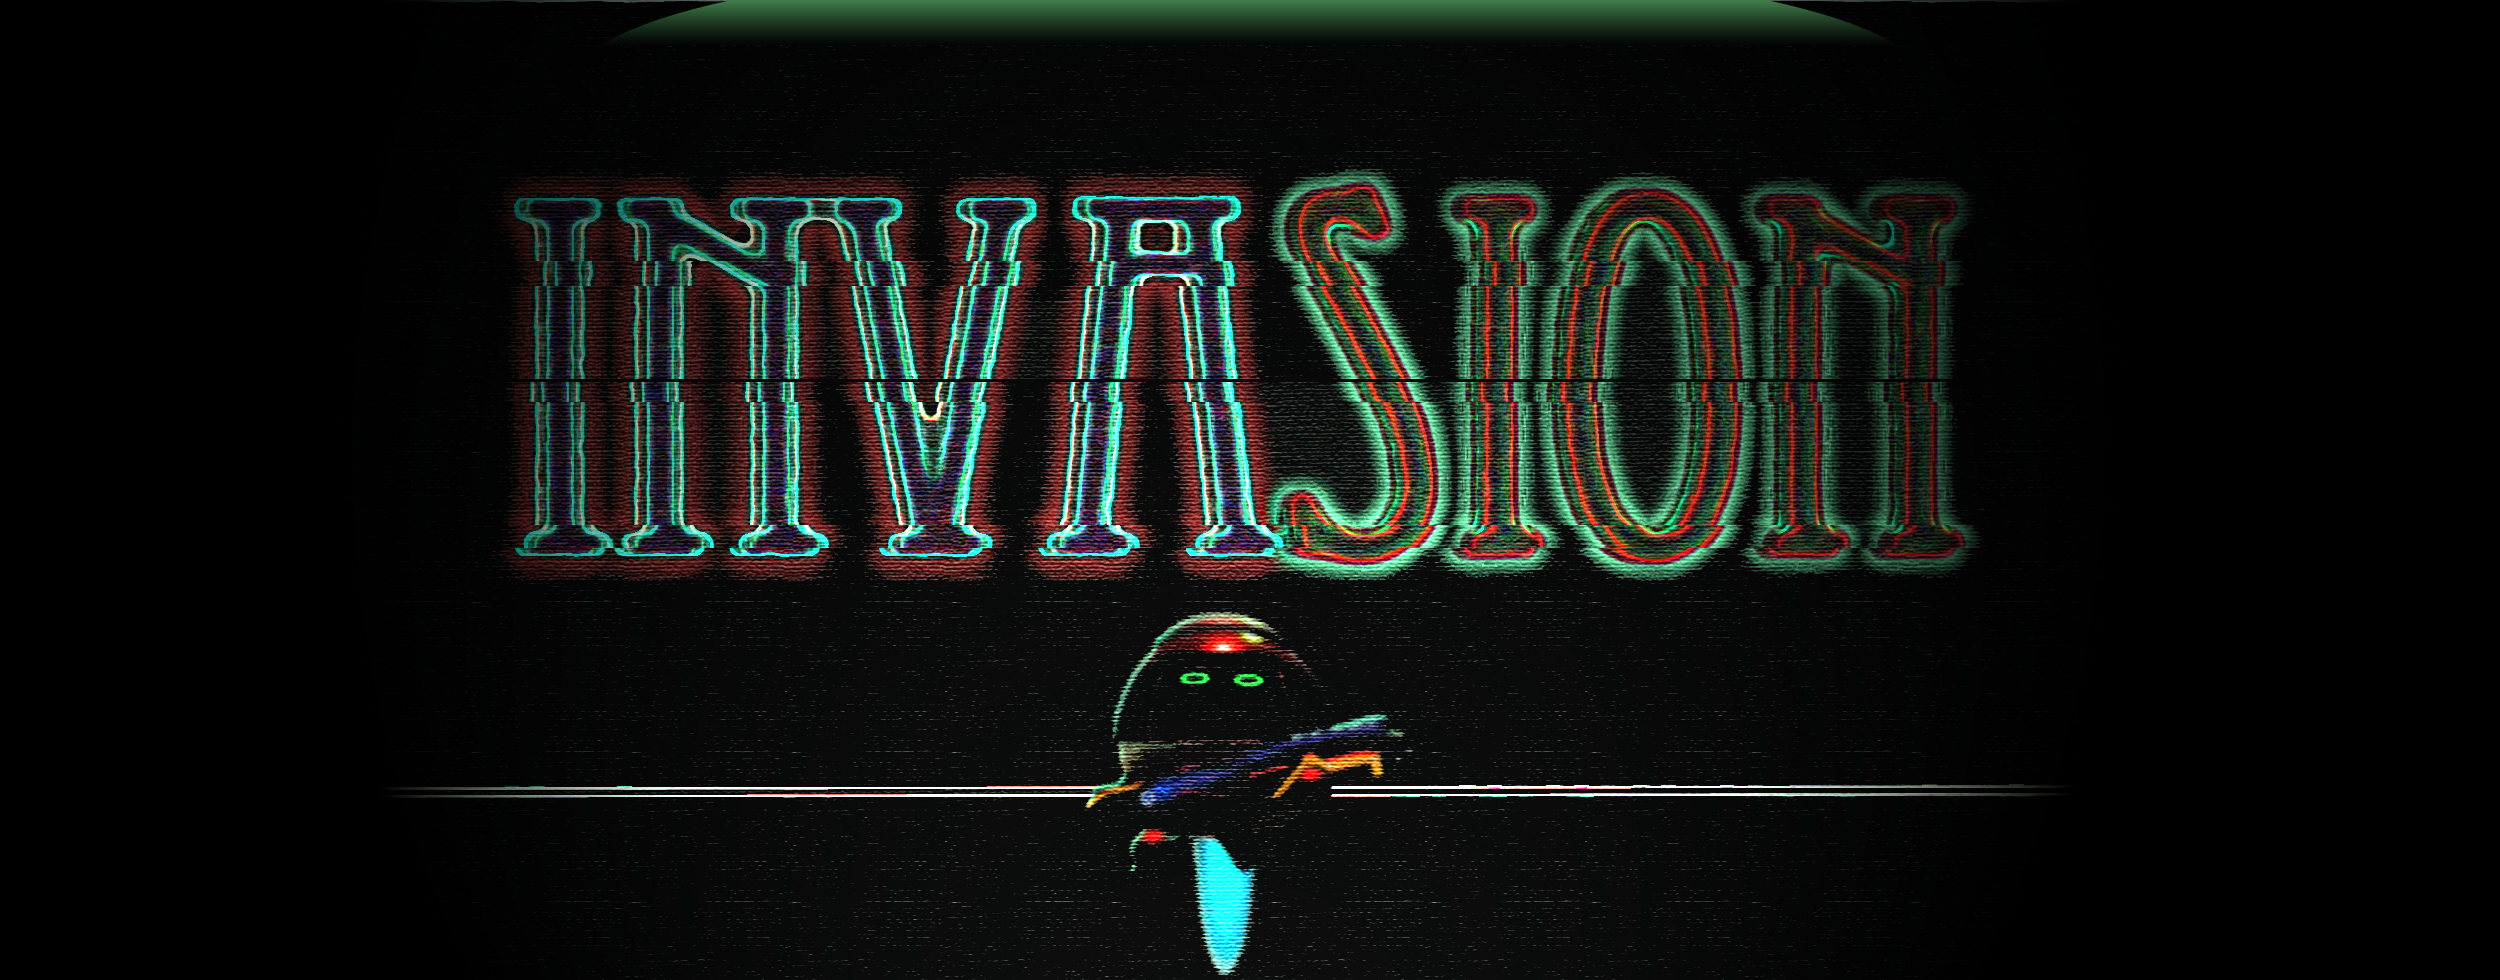 Invasion early access